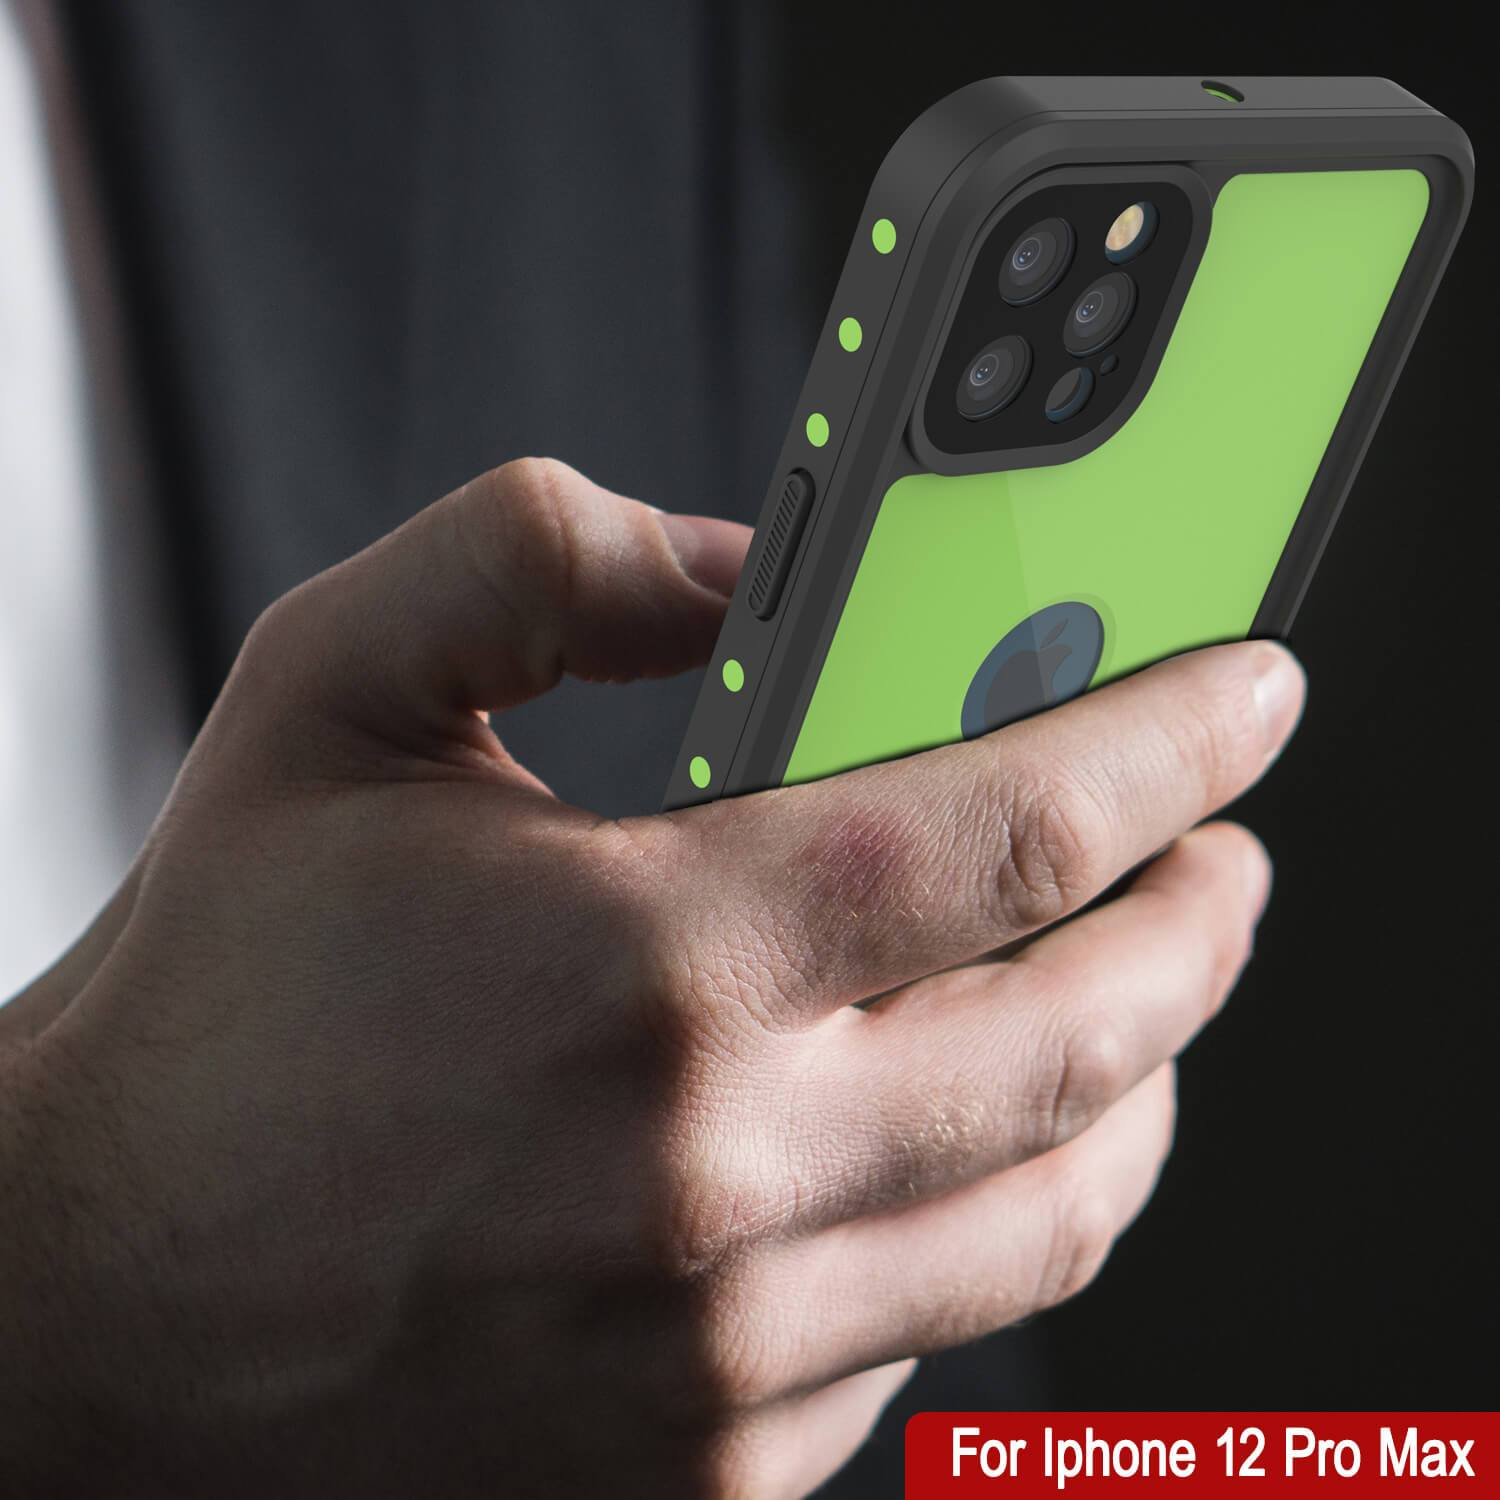 iPhone 12 Pro Max Waterproof IP68 Case, Punkcase [Light green] [StudStar Series] [Slim Fit] [Dirtproof]